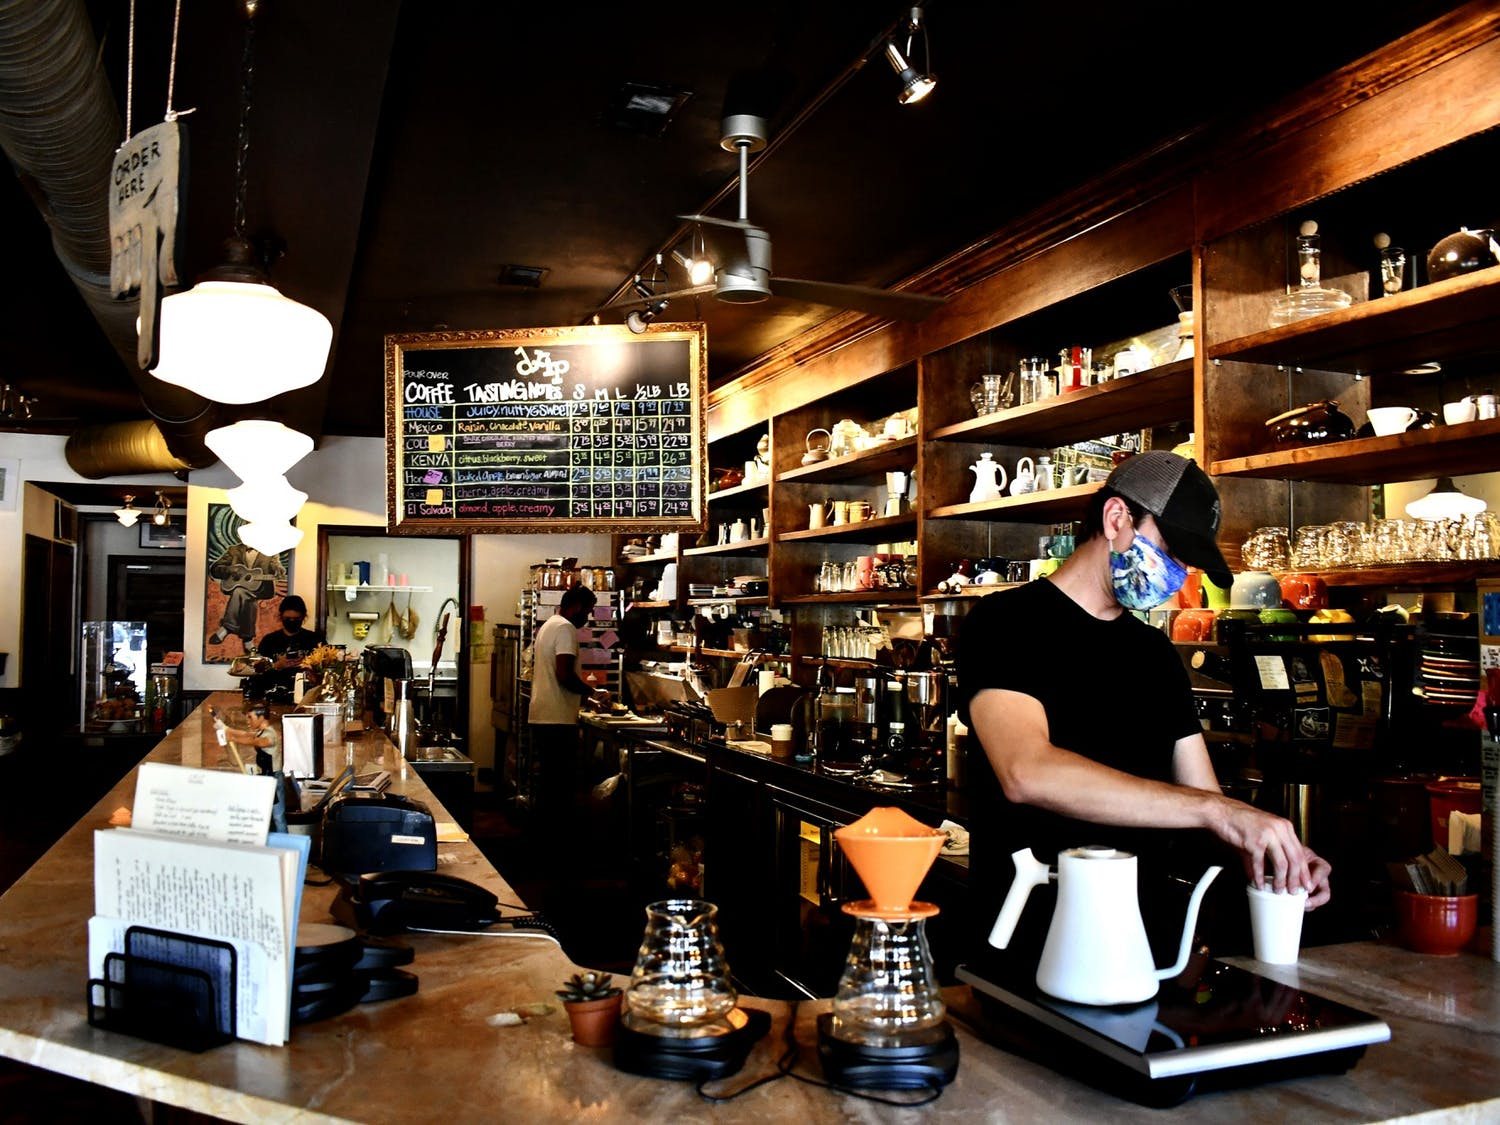 Drip Coffee has an extensive menu, so anyone can come in and leave with a drink personal to them.